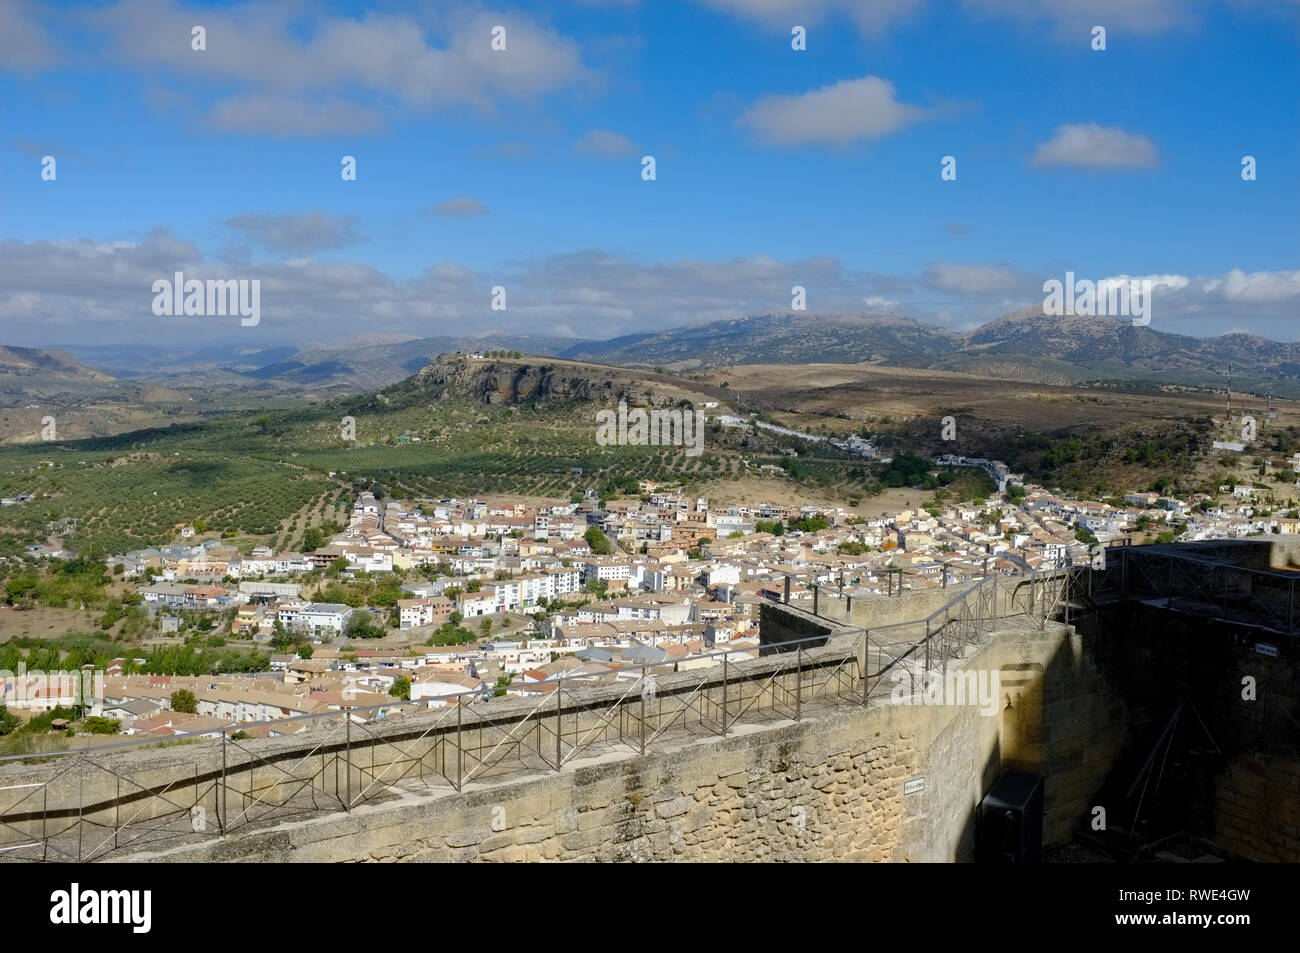 View of Alcala la Real town and surrounding landscape from the walls of the hilltop, historic castle/fortress. Jaen Province, Andalusia, Spain - Stock Image